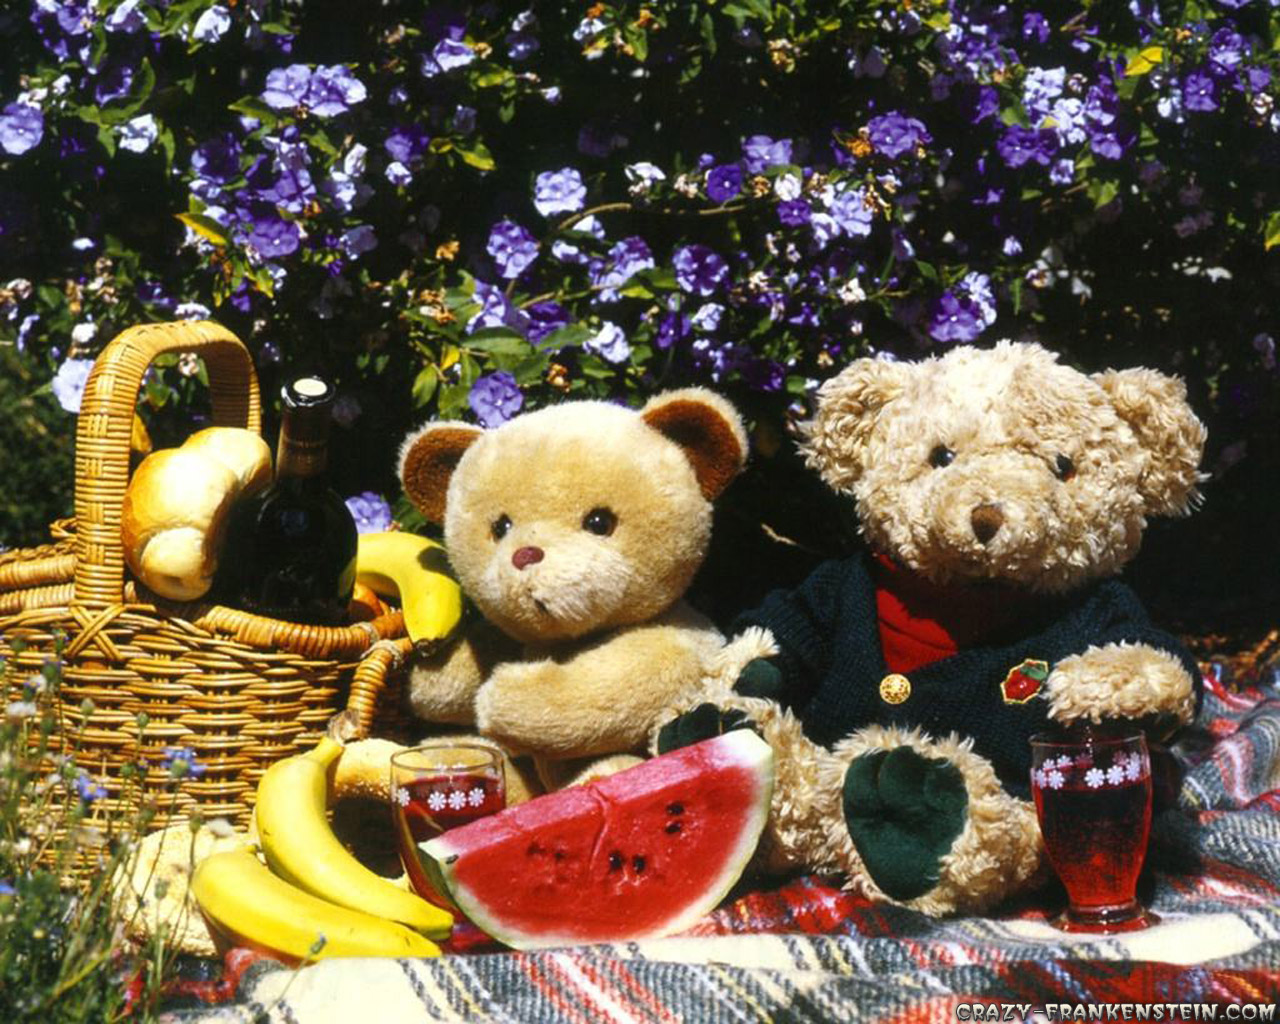 Free Wallpapers Of Cute Teddy Bears Picture Of Teddy Bear Wallpapers 51 Wallpapers